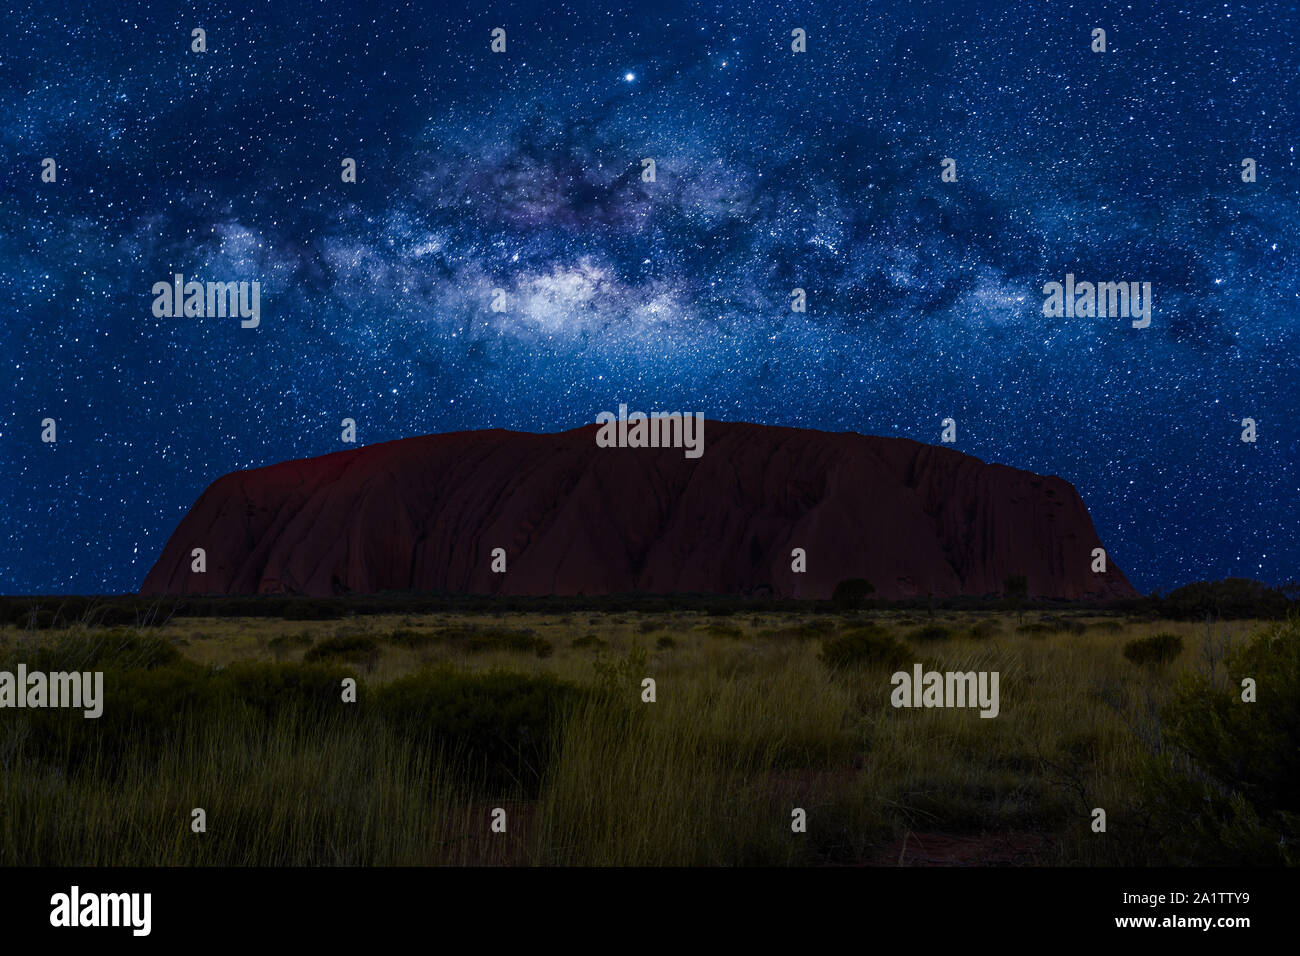 Spectacular Uluru by night with milky way, stars field and galaxies. Uluru-Kata Tjuta National Park in Northern Territory, Central Australia. Stock Photo